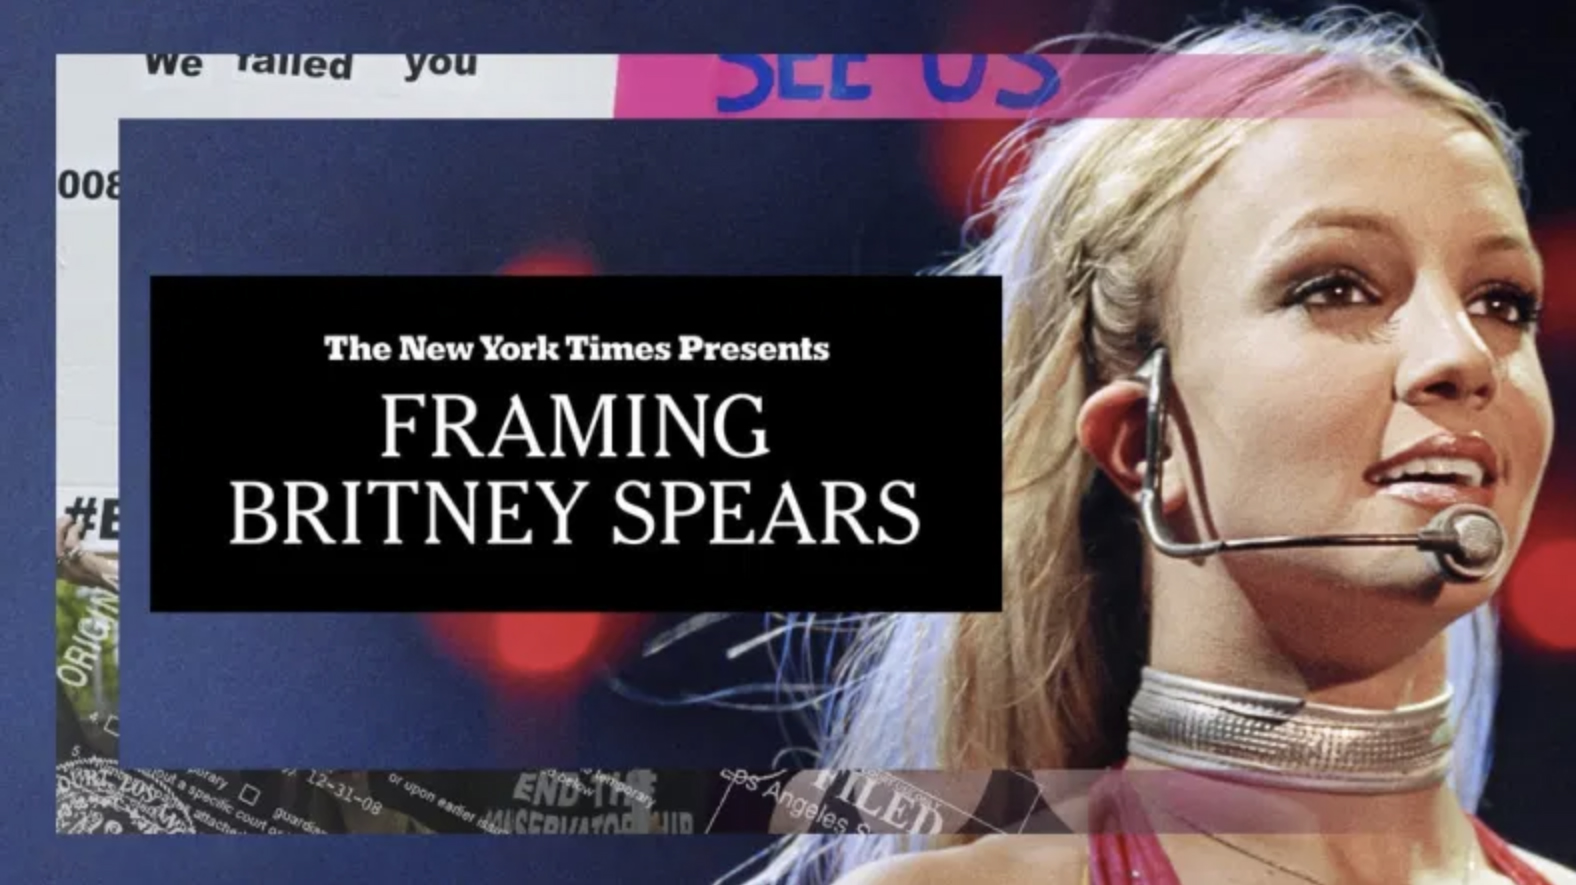 The New York Times Presents: Framing Britney Spears